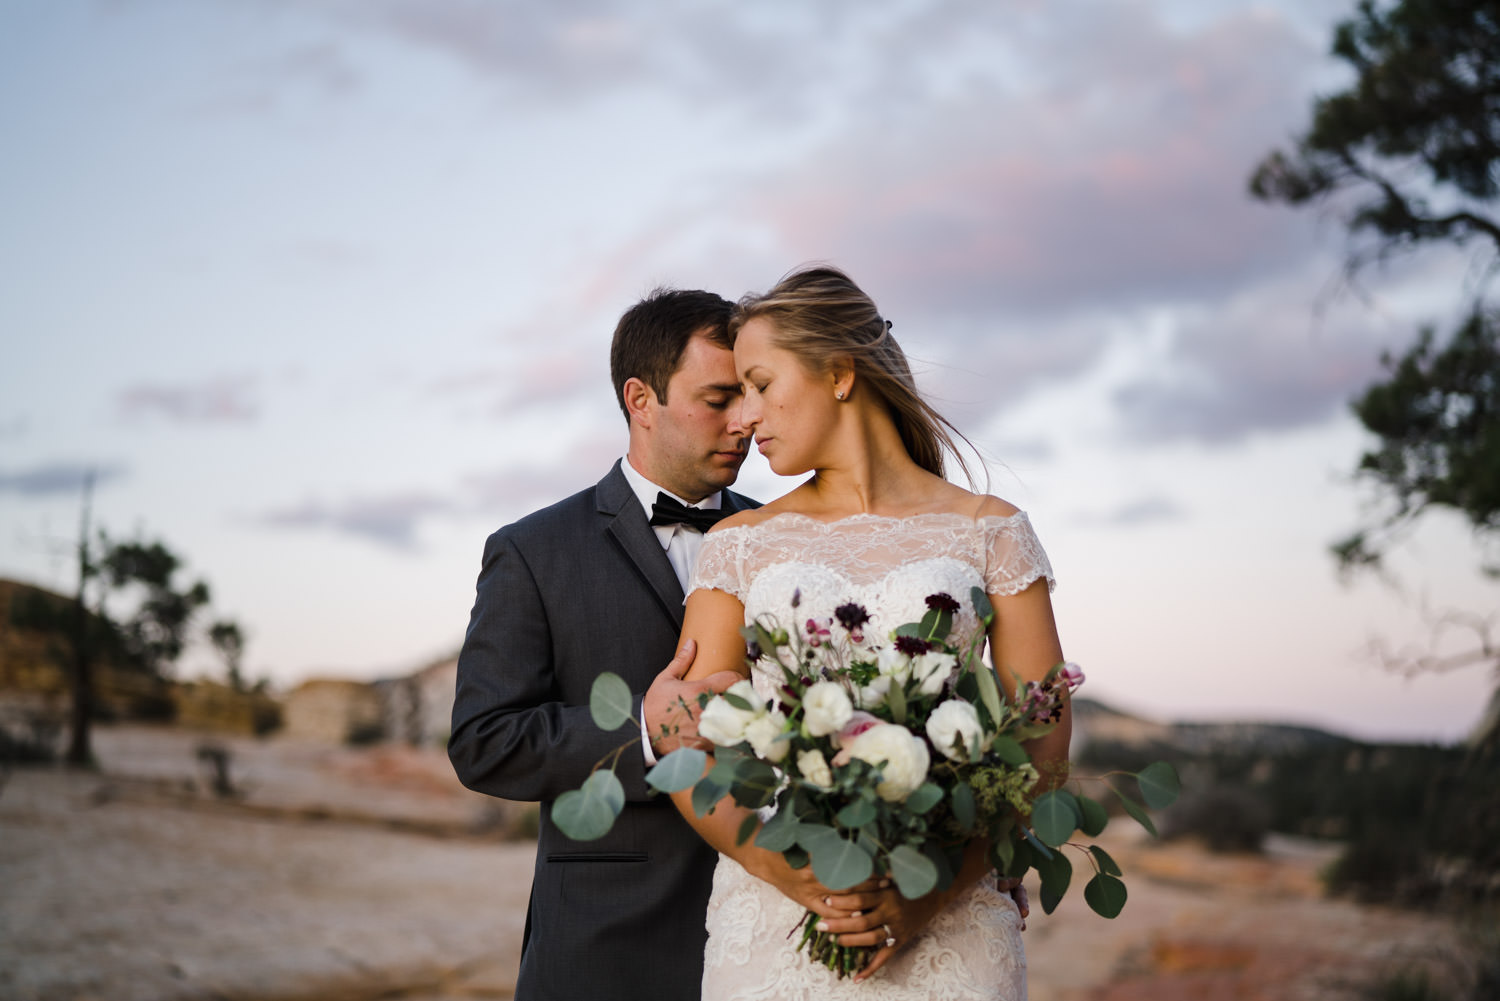 Zion National Park wedding intimate couple with bridal bouquet photo